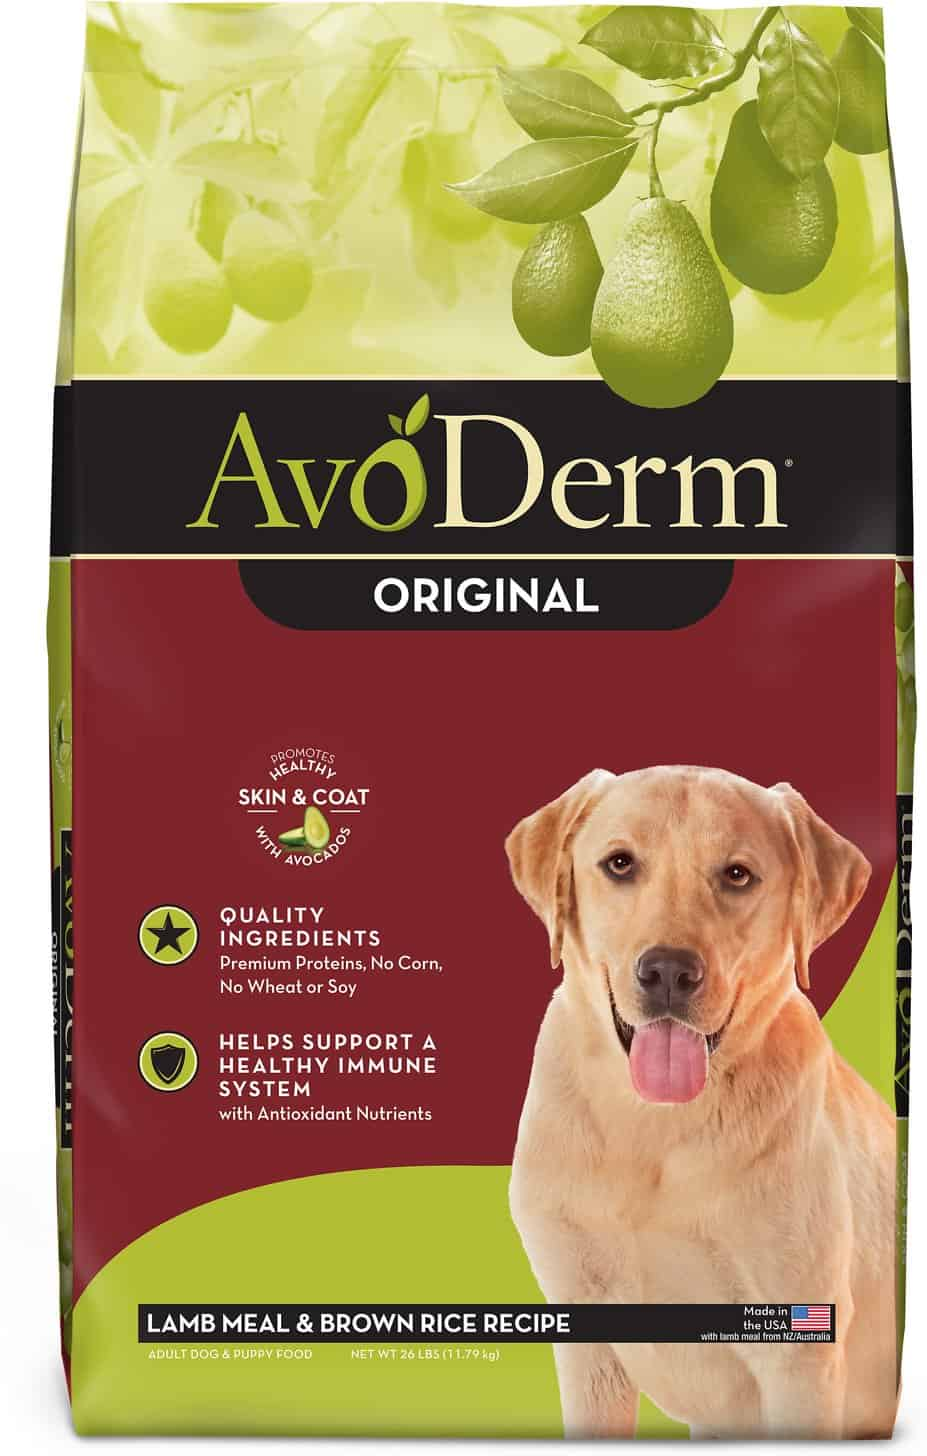 Avoderm Dog Food Review 2020: Is Avocado Best for Dogs? 2